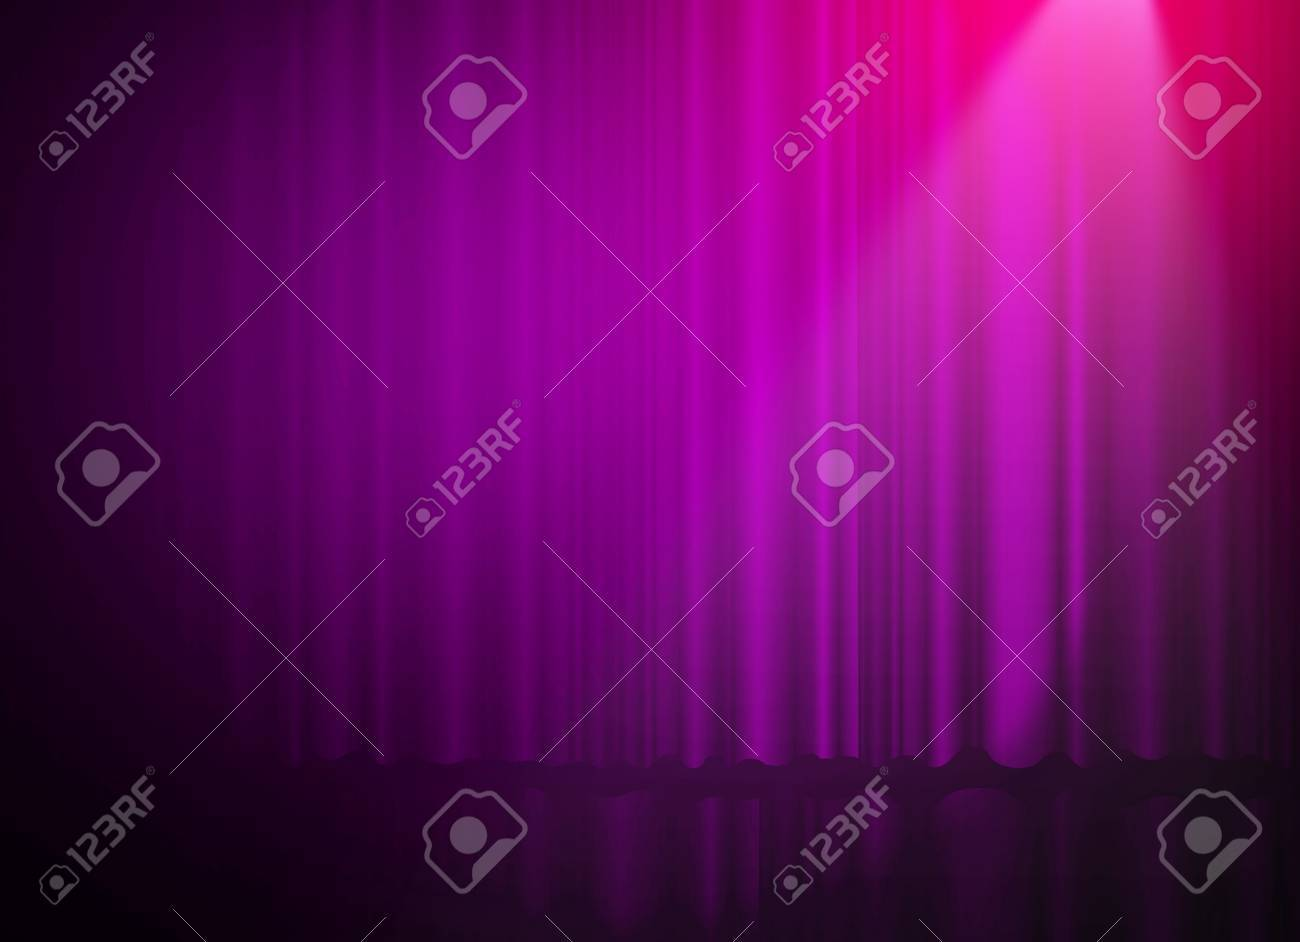 Great Stock Photo The Concert On Stage Background With Flood Lights Pink